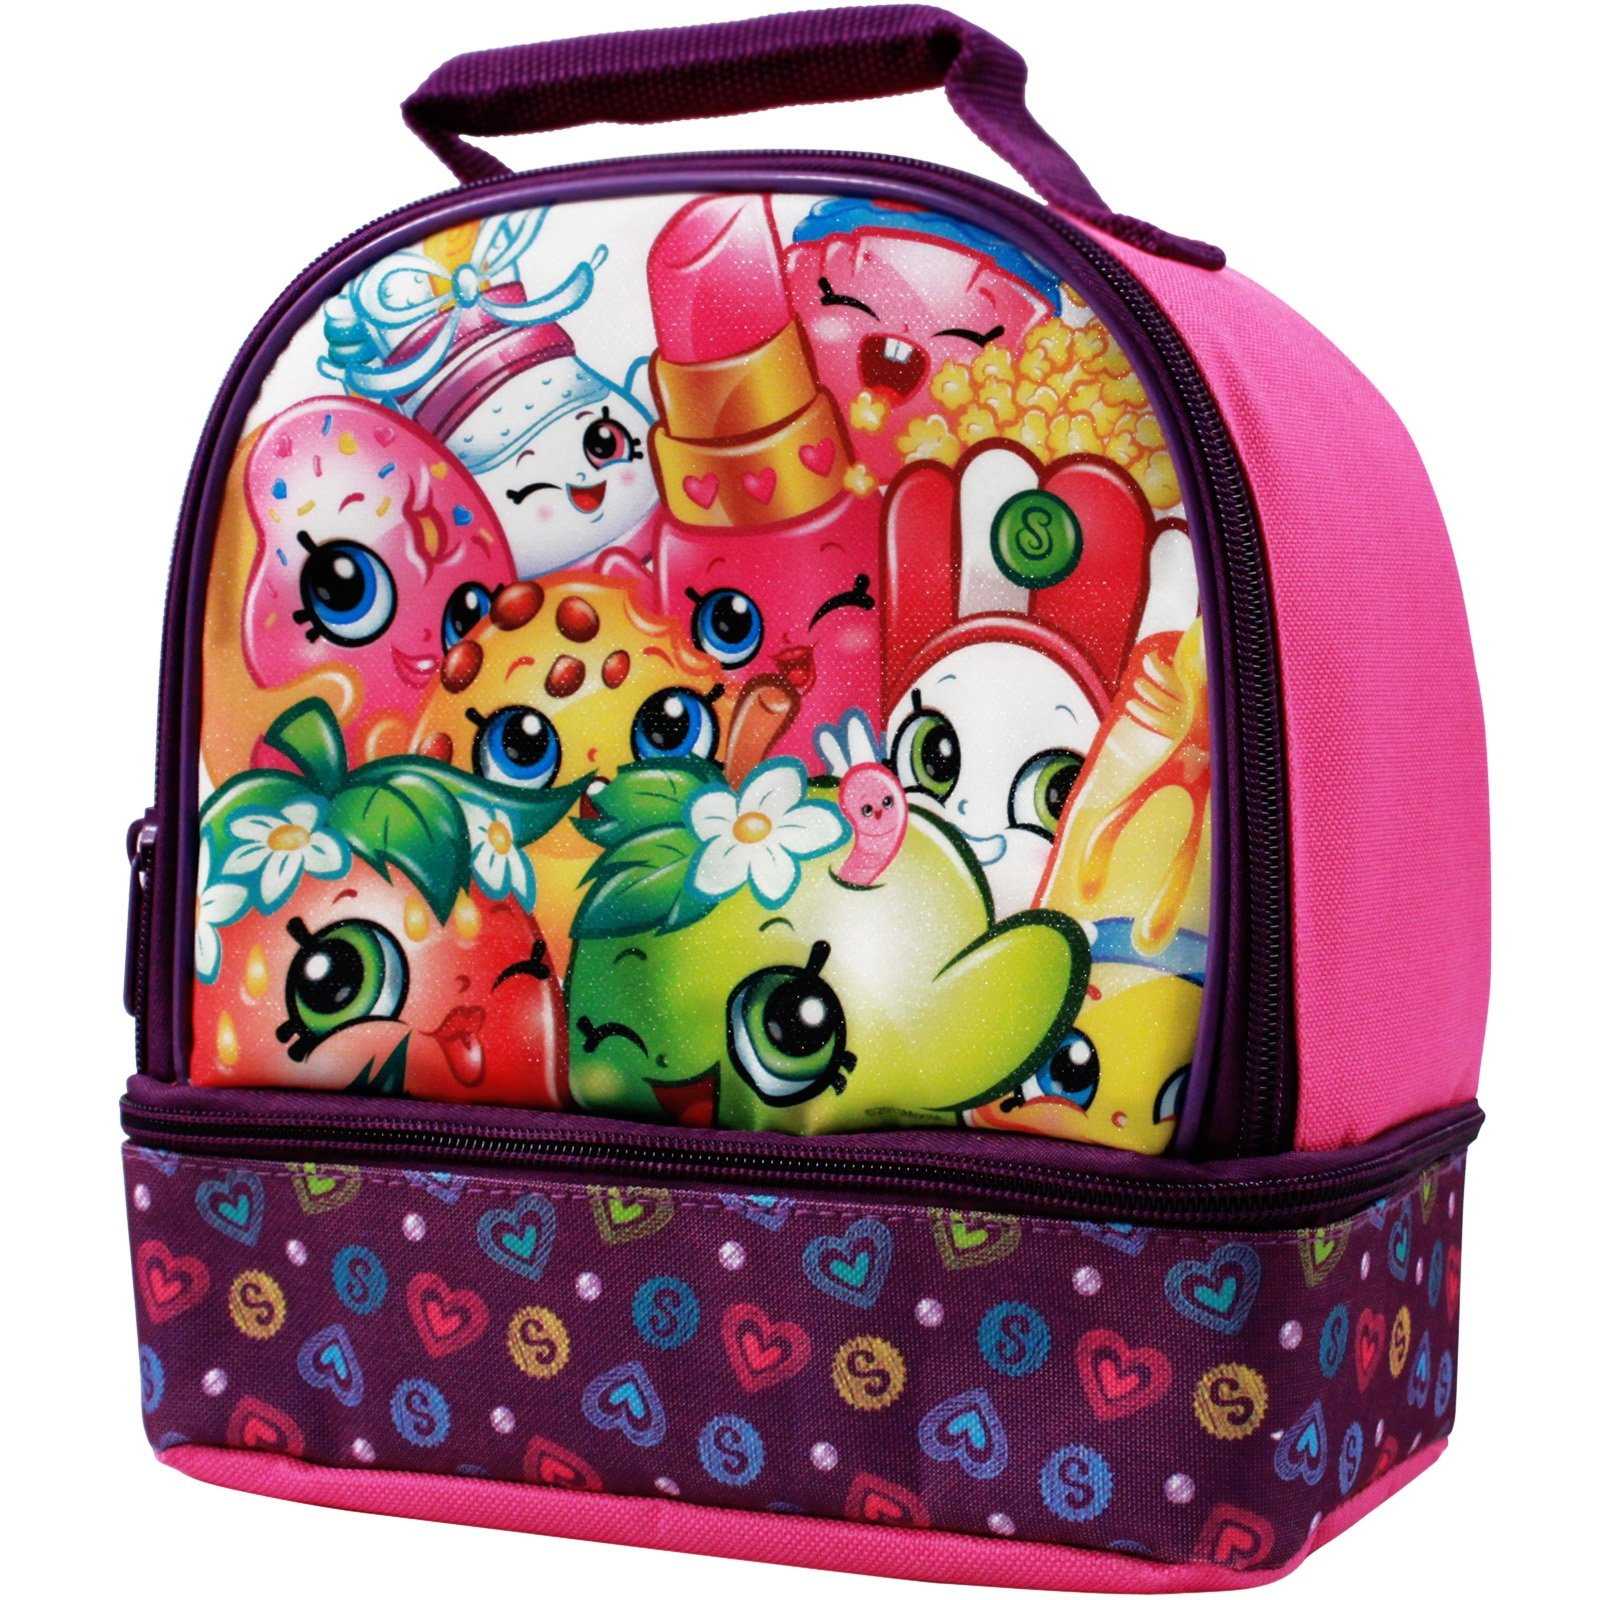 Shopkins Girls Dual Compartment Lunch Bag Insulated